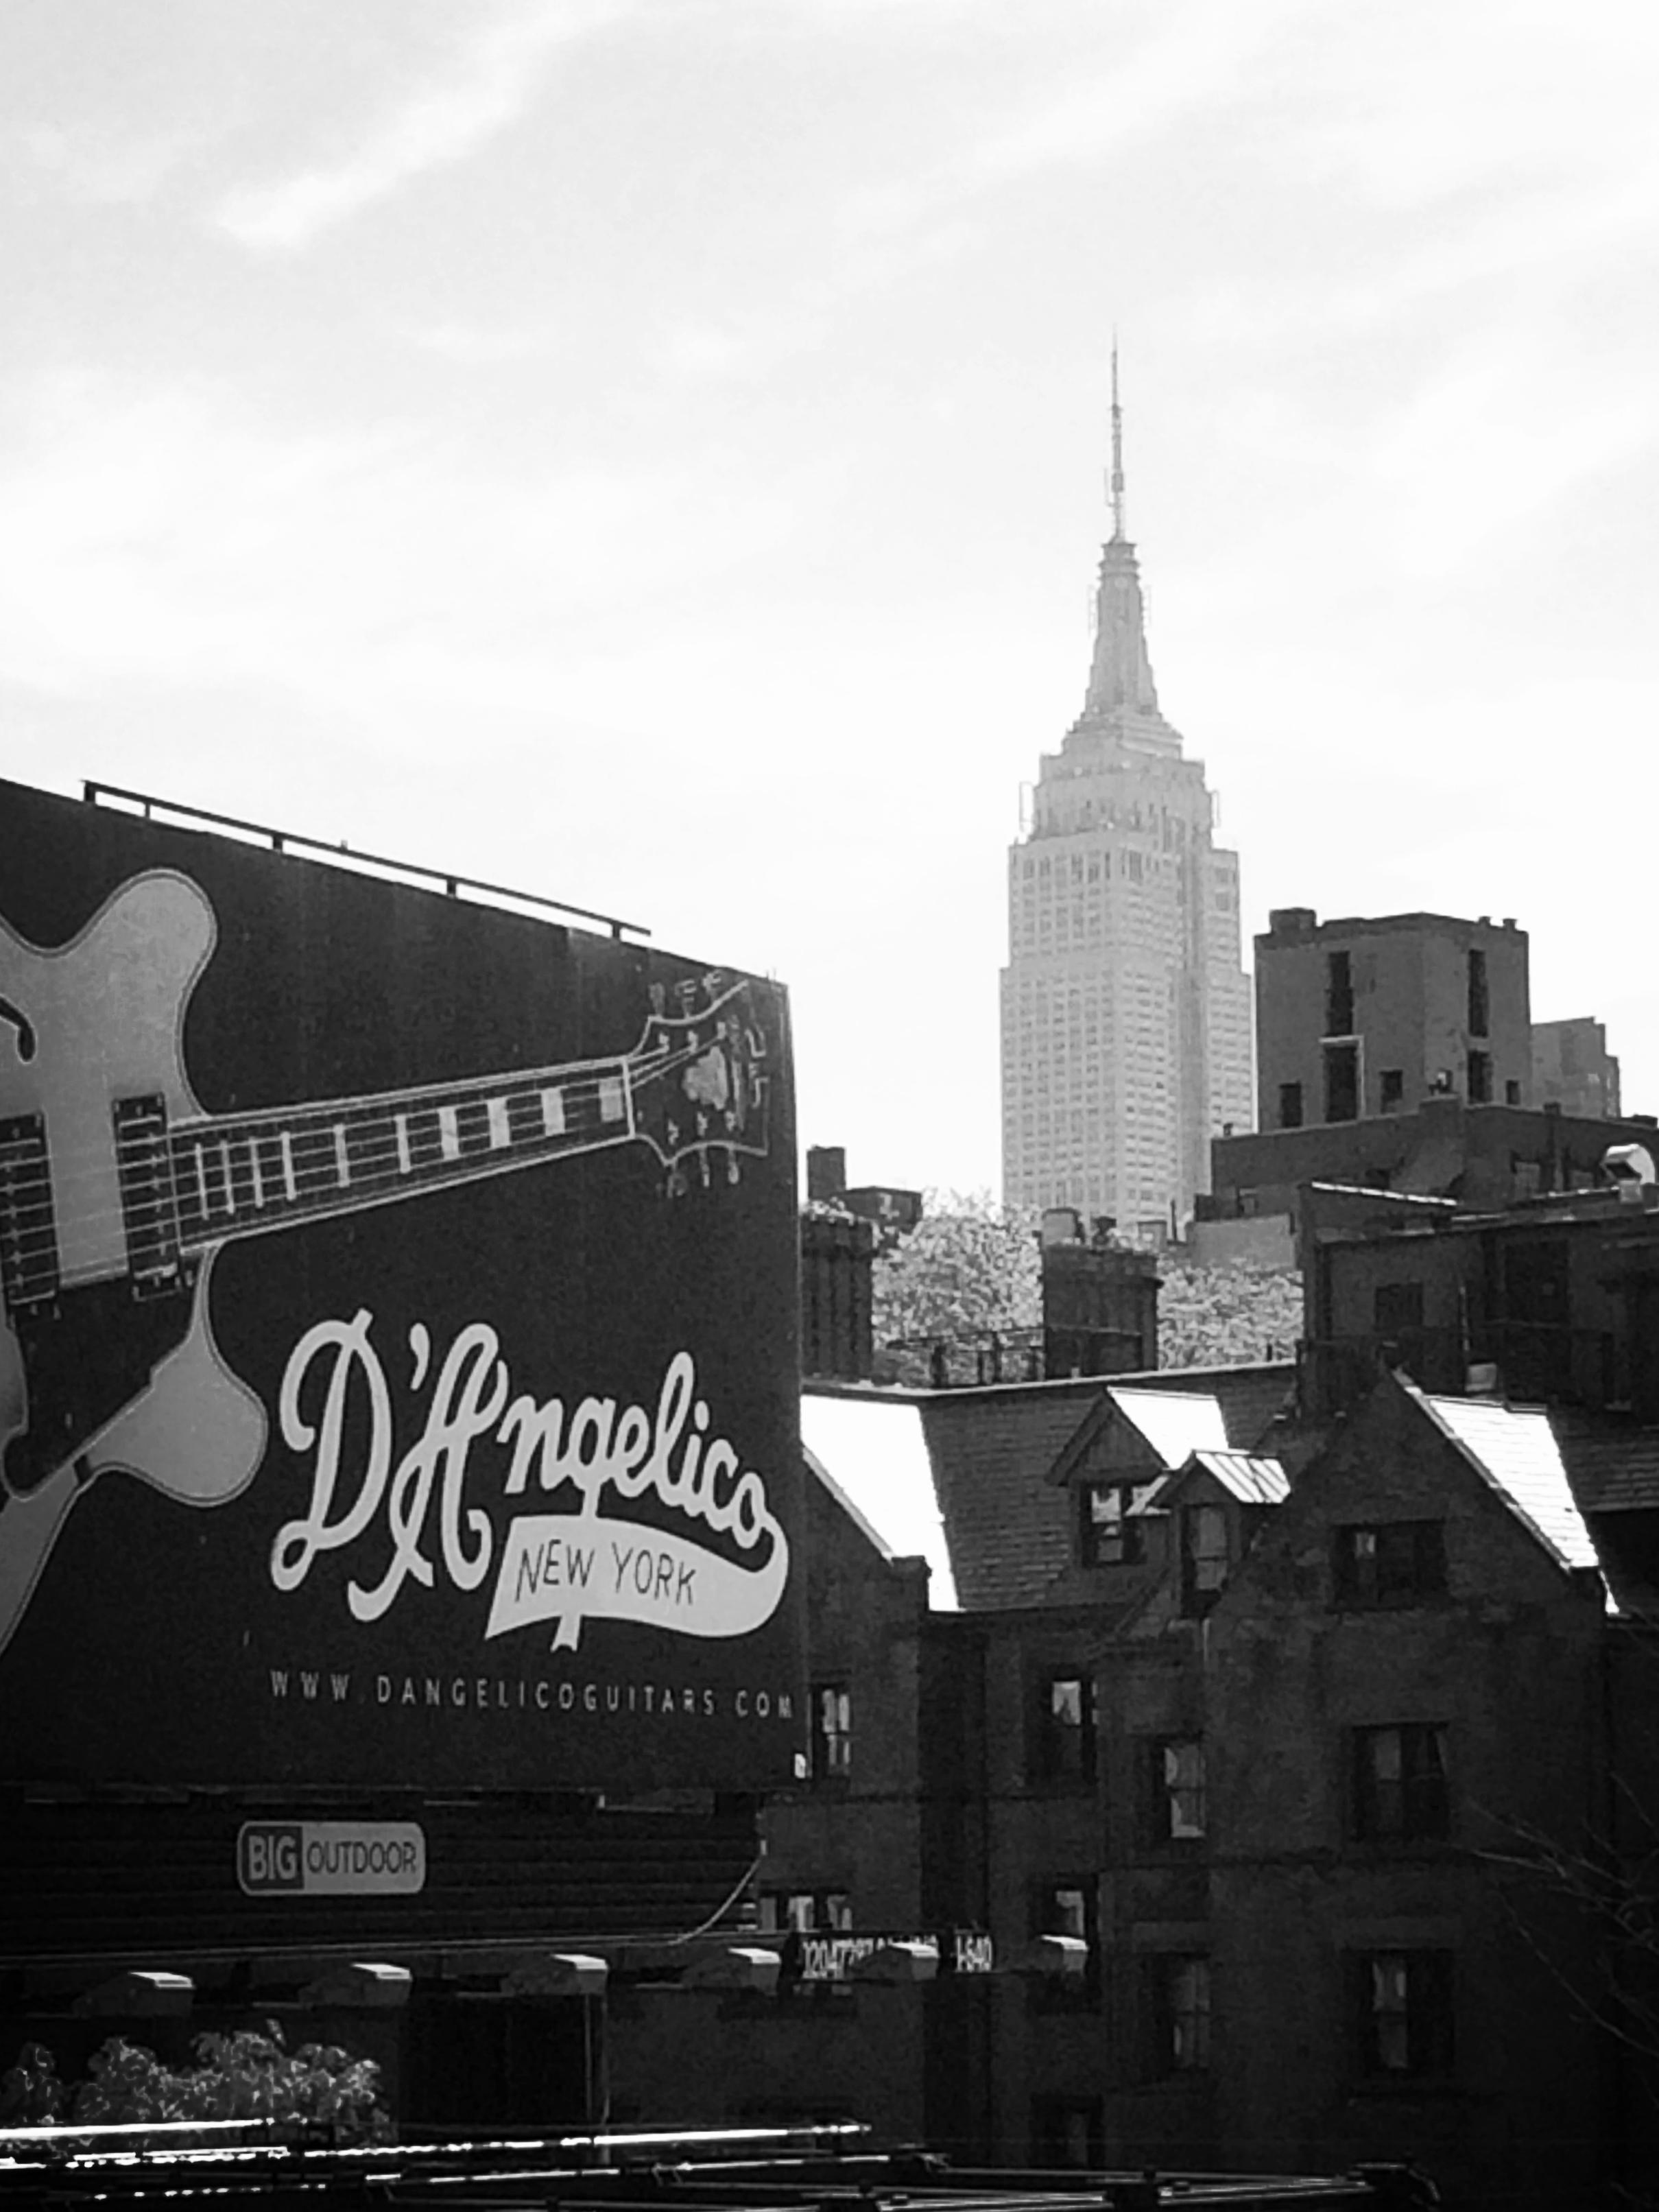 an iconic New York skyline viewed from the highline